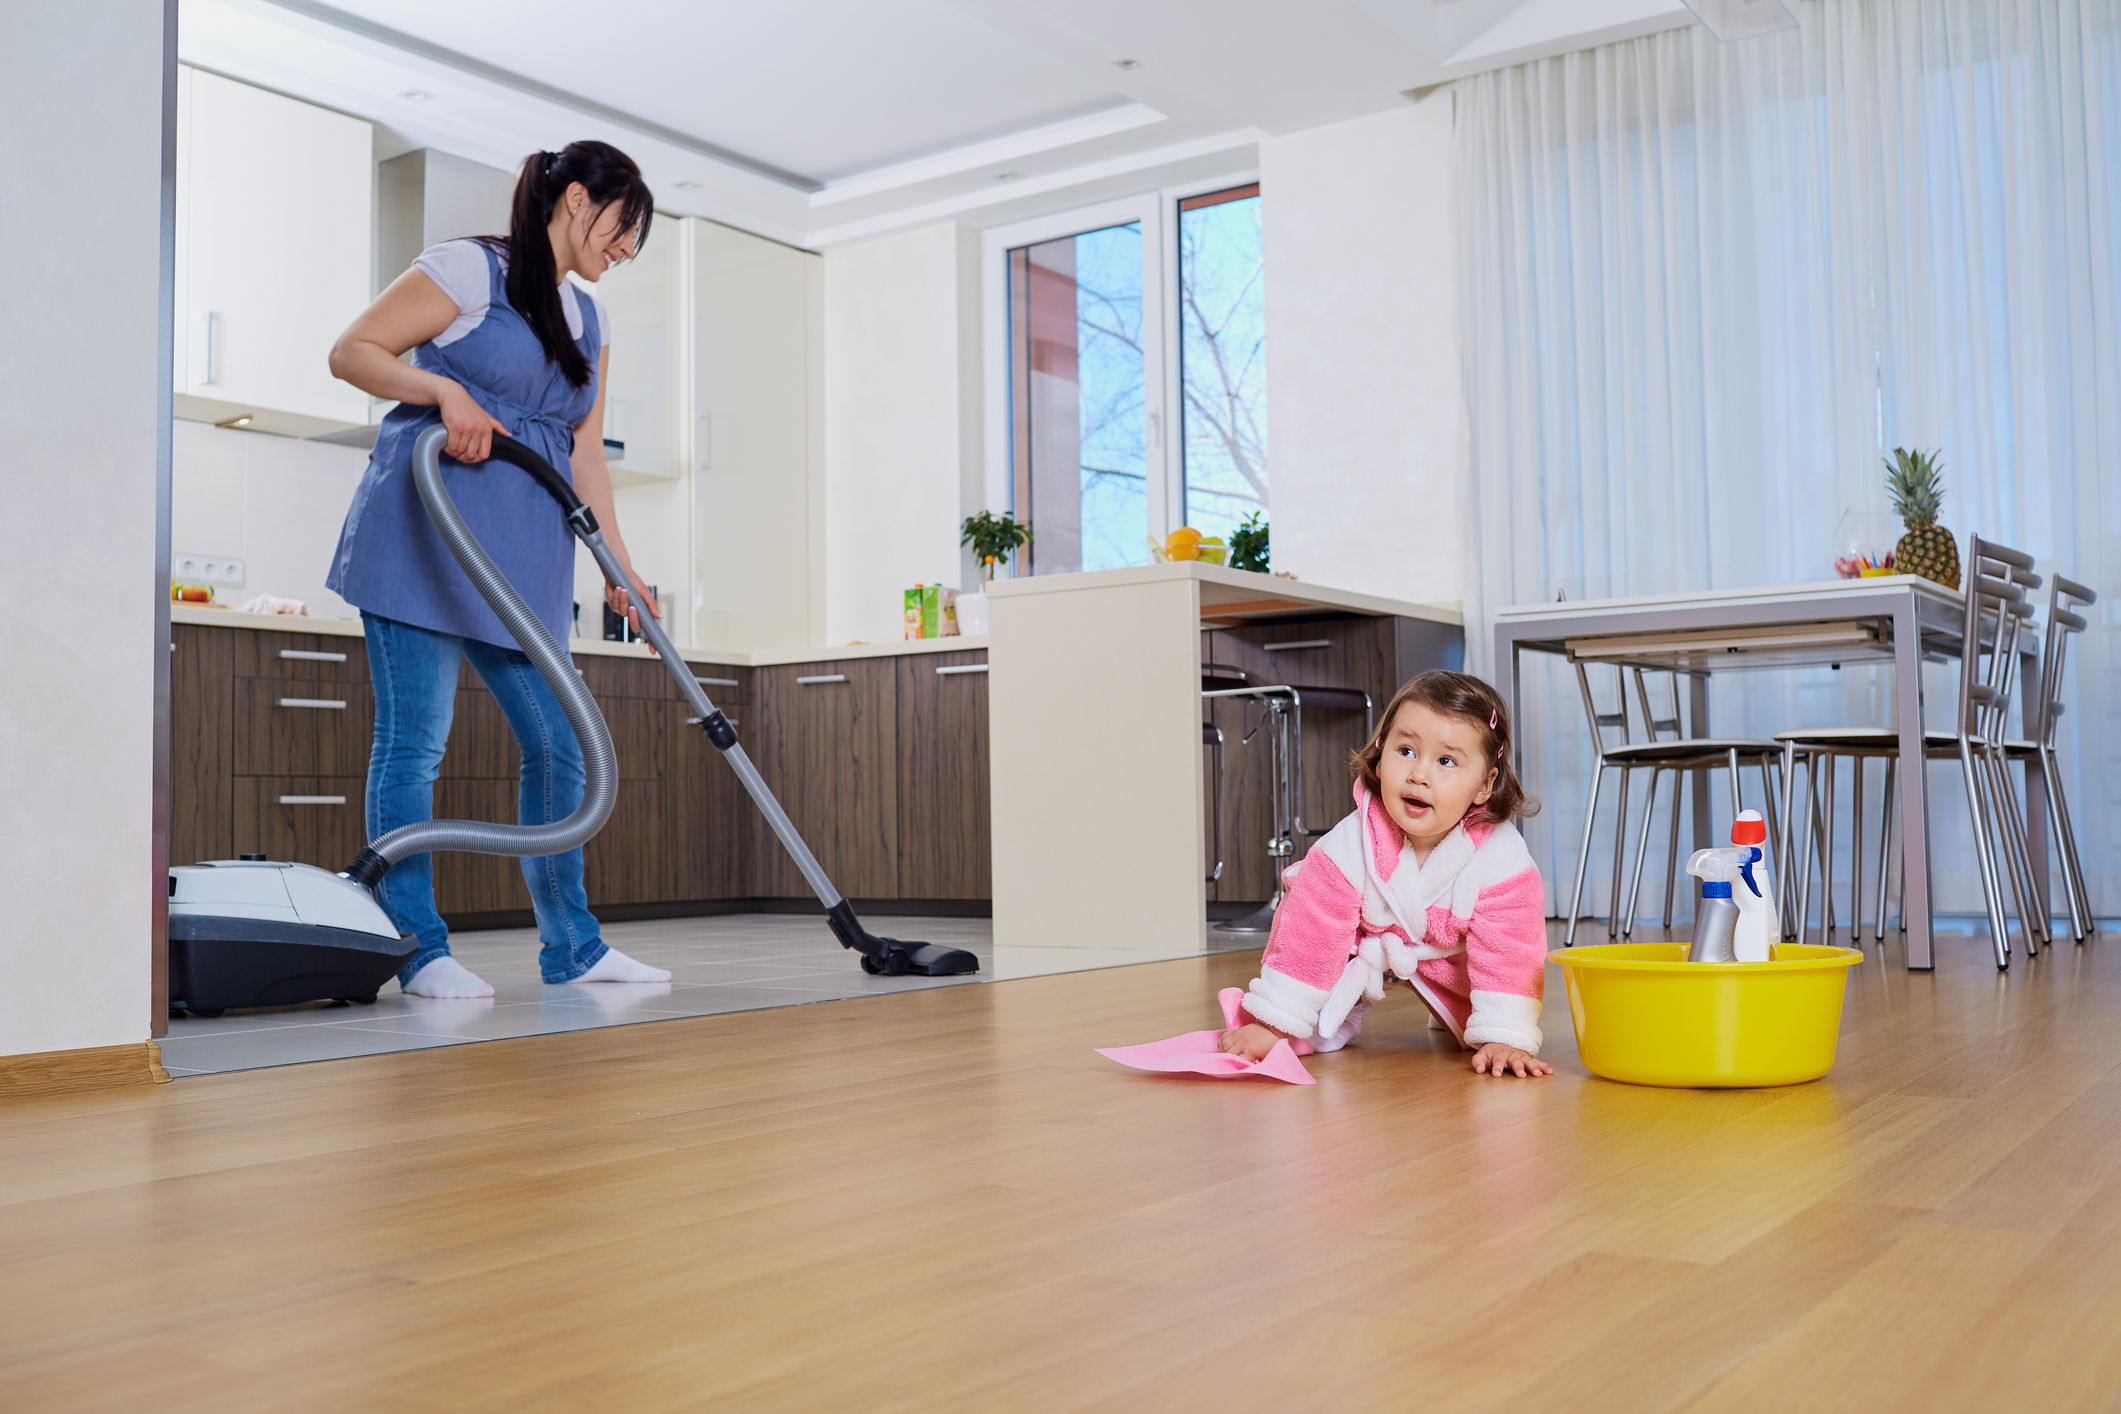 children cleaning their room - HD2121×1414